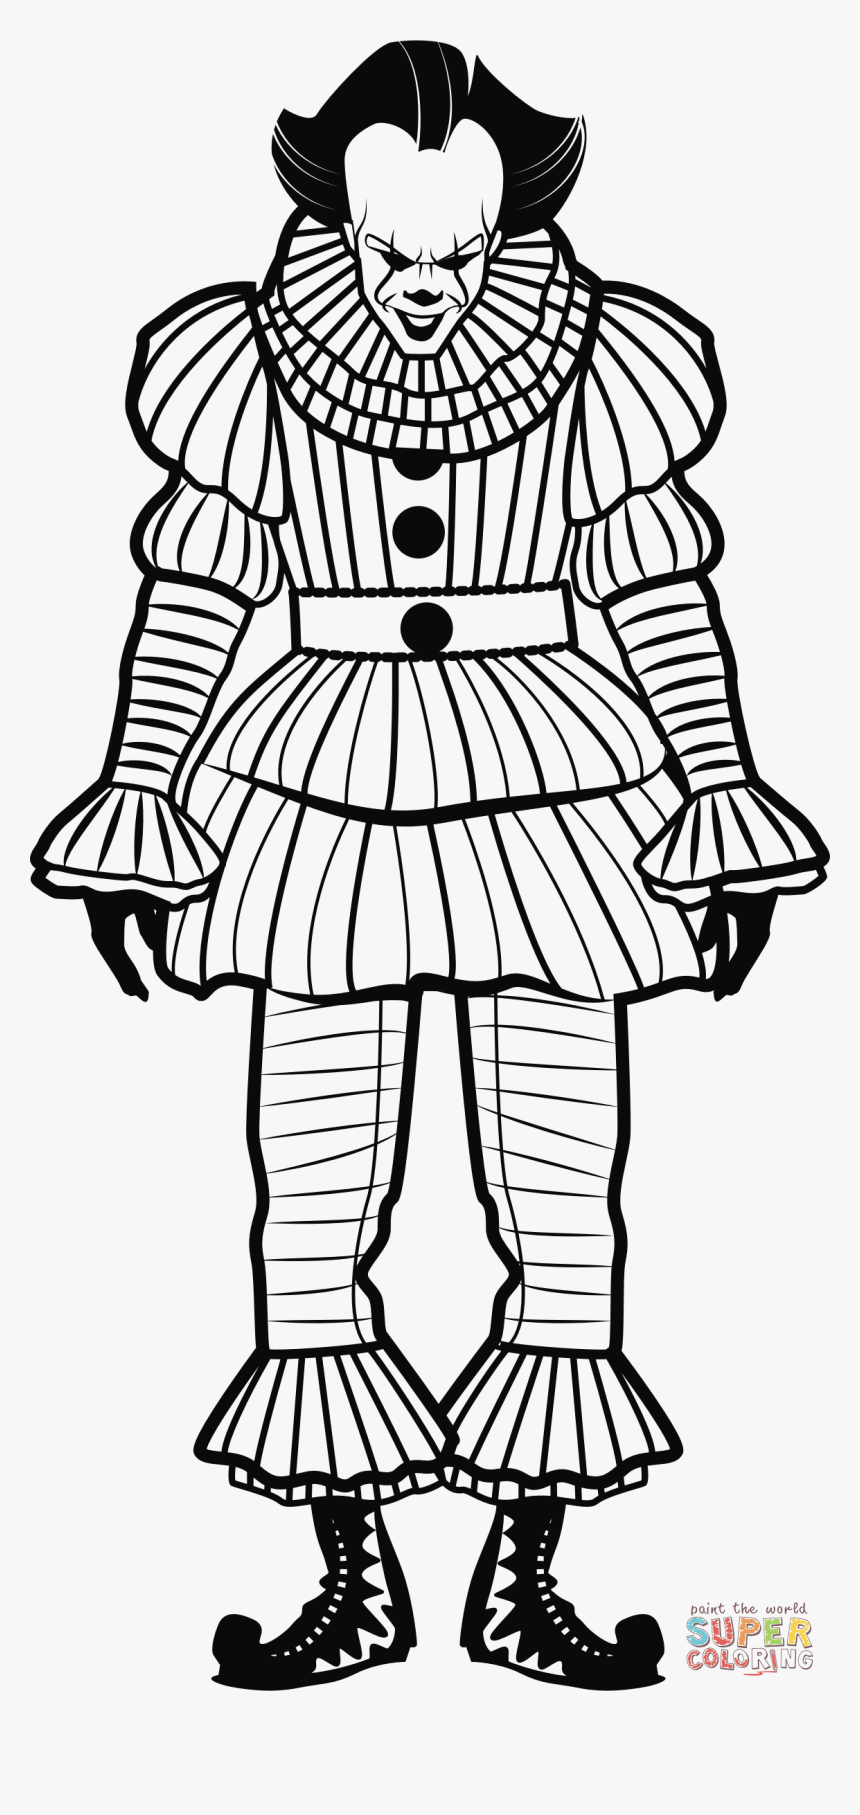 Pennywise Full Body Drawing Hd Png Download Transparent Png Image Pngitem